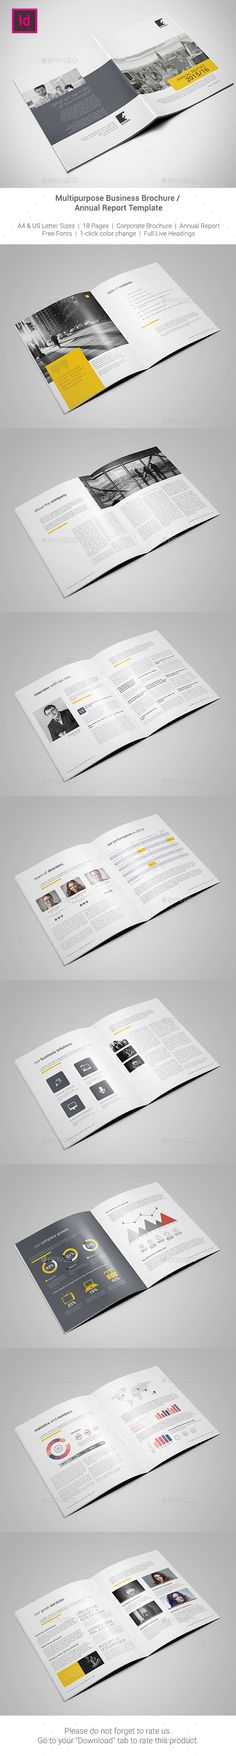 Brand Manual Template  Brand Manual Brochures And Template